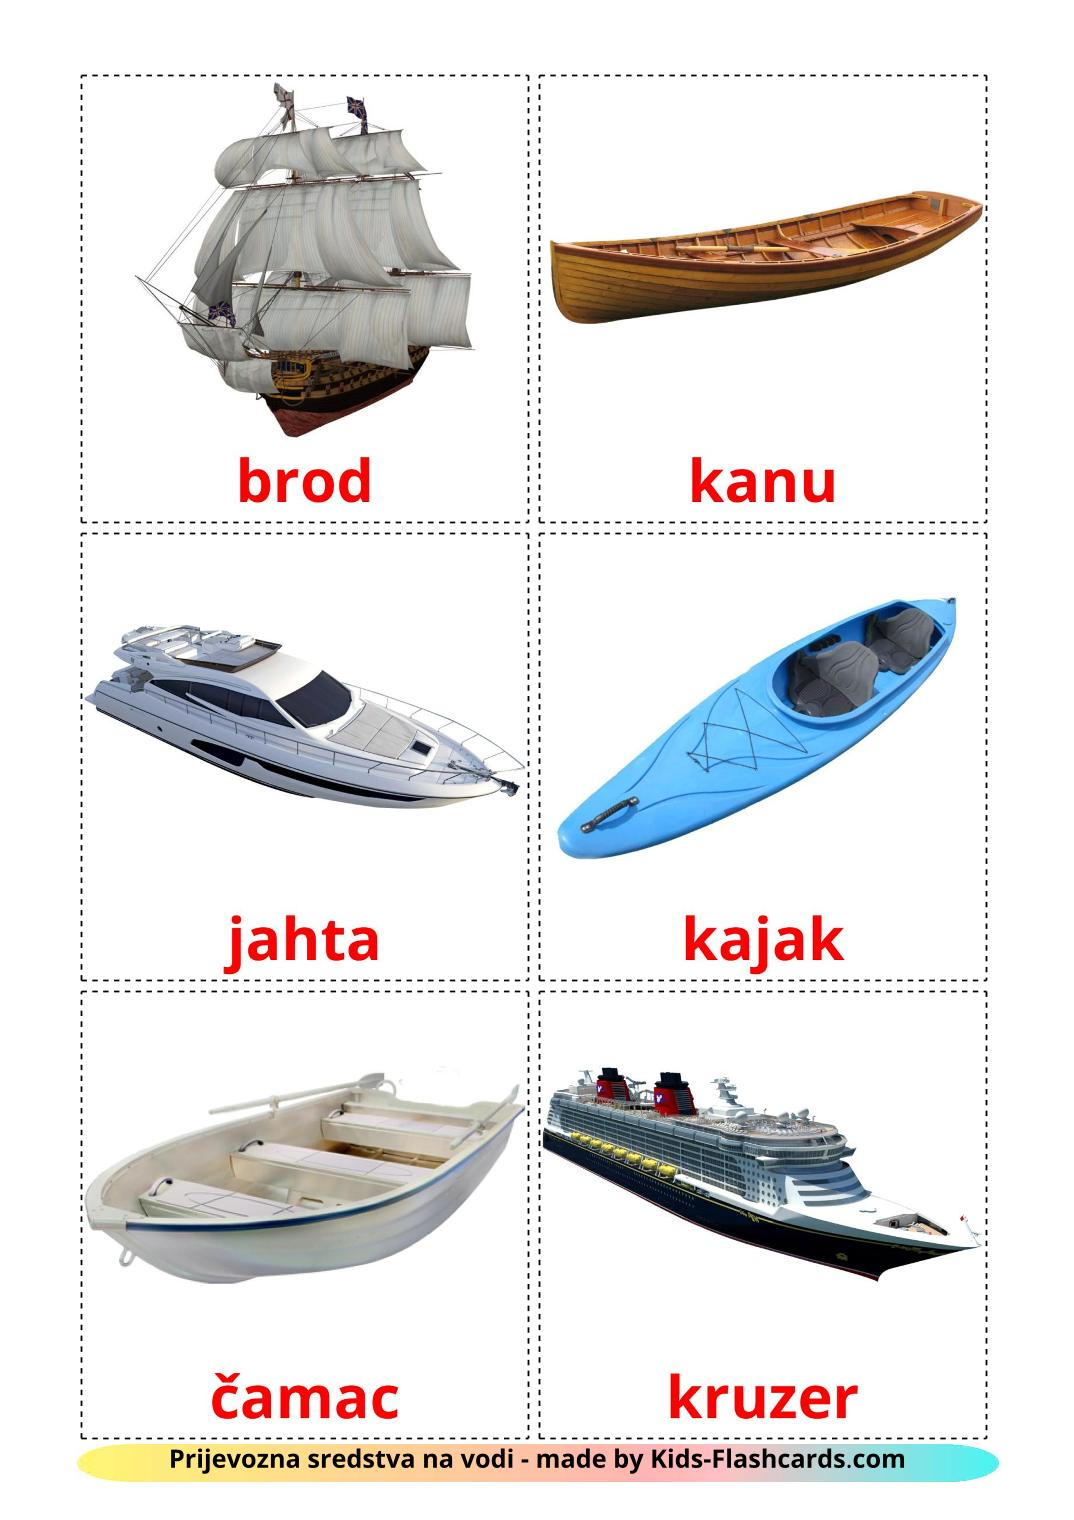 Water transport - 18 Free Printable croatian Flashcards